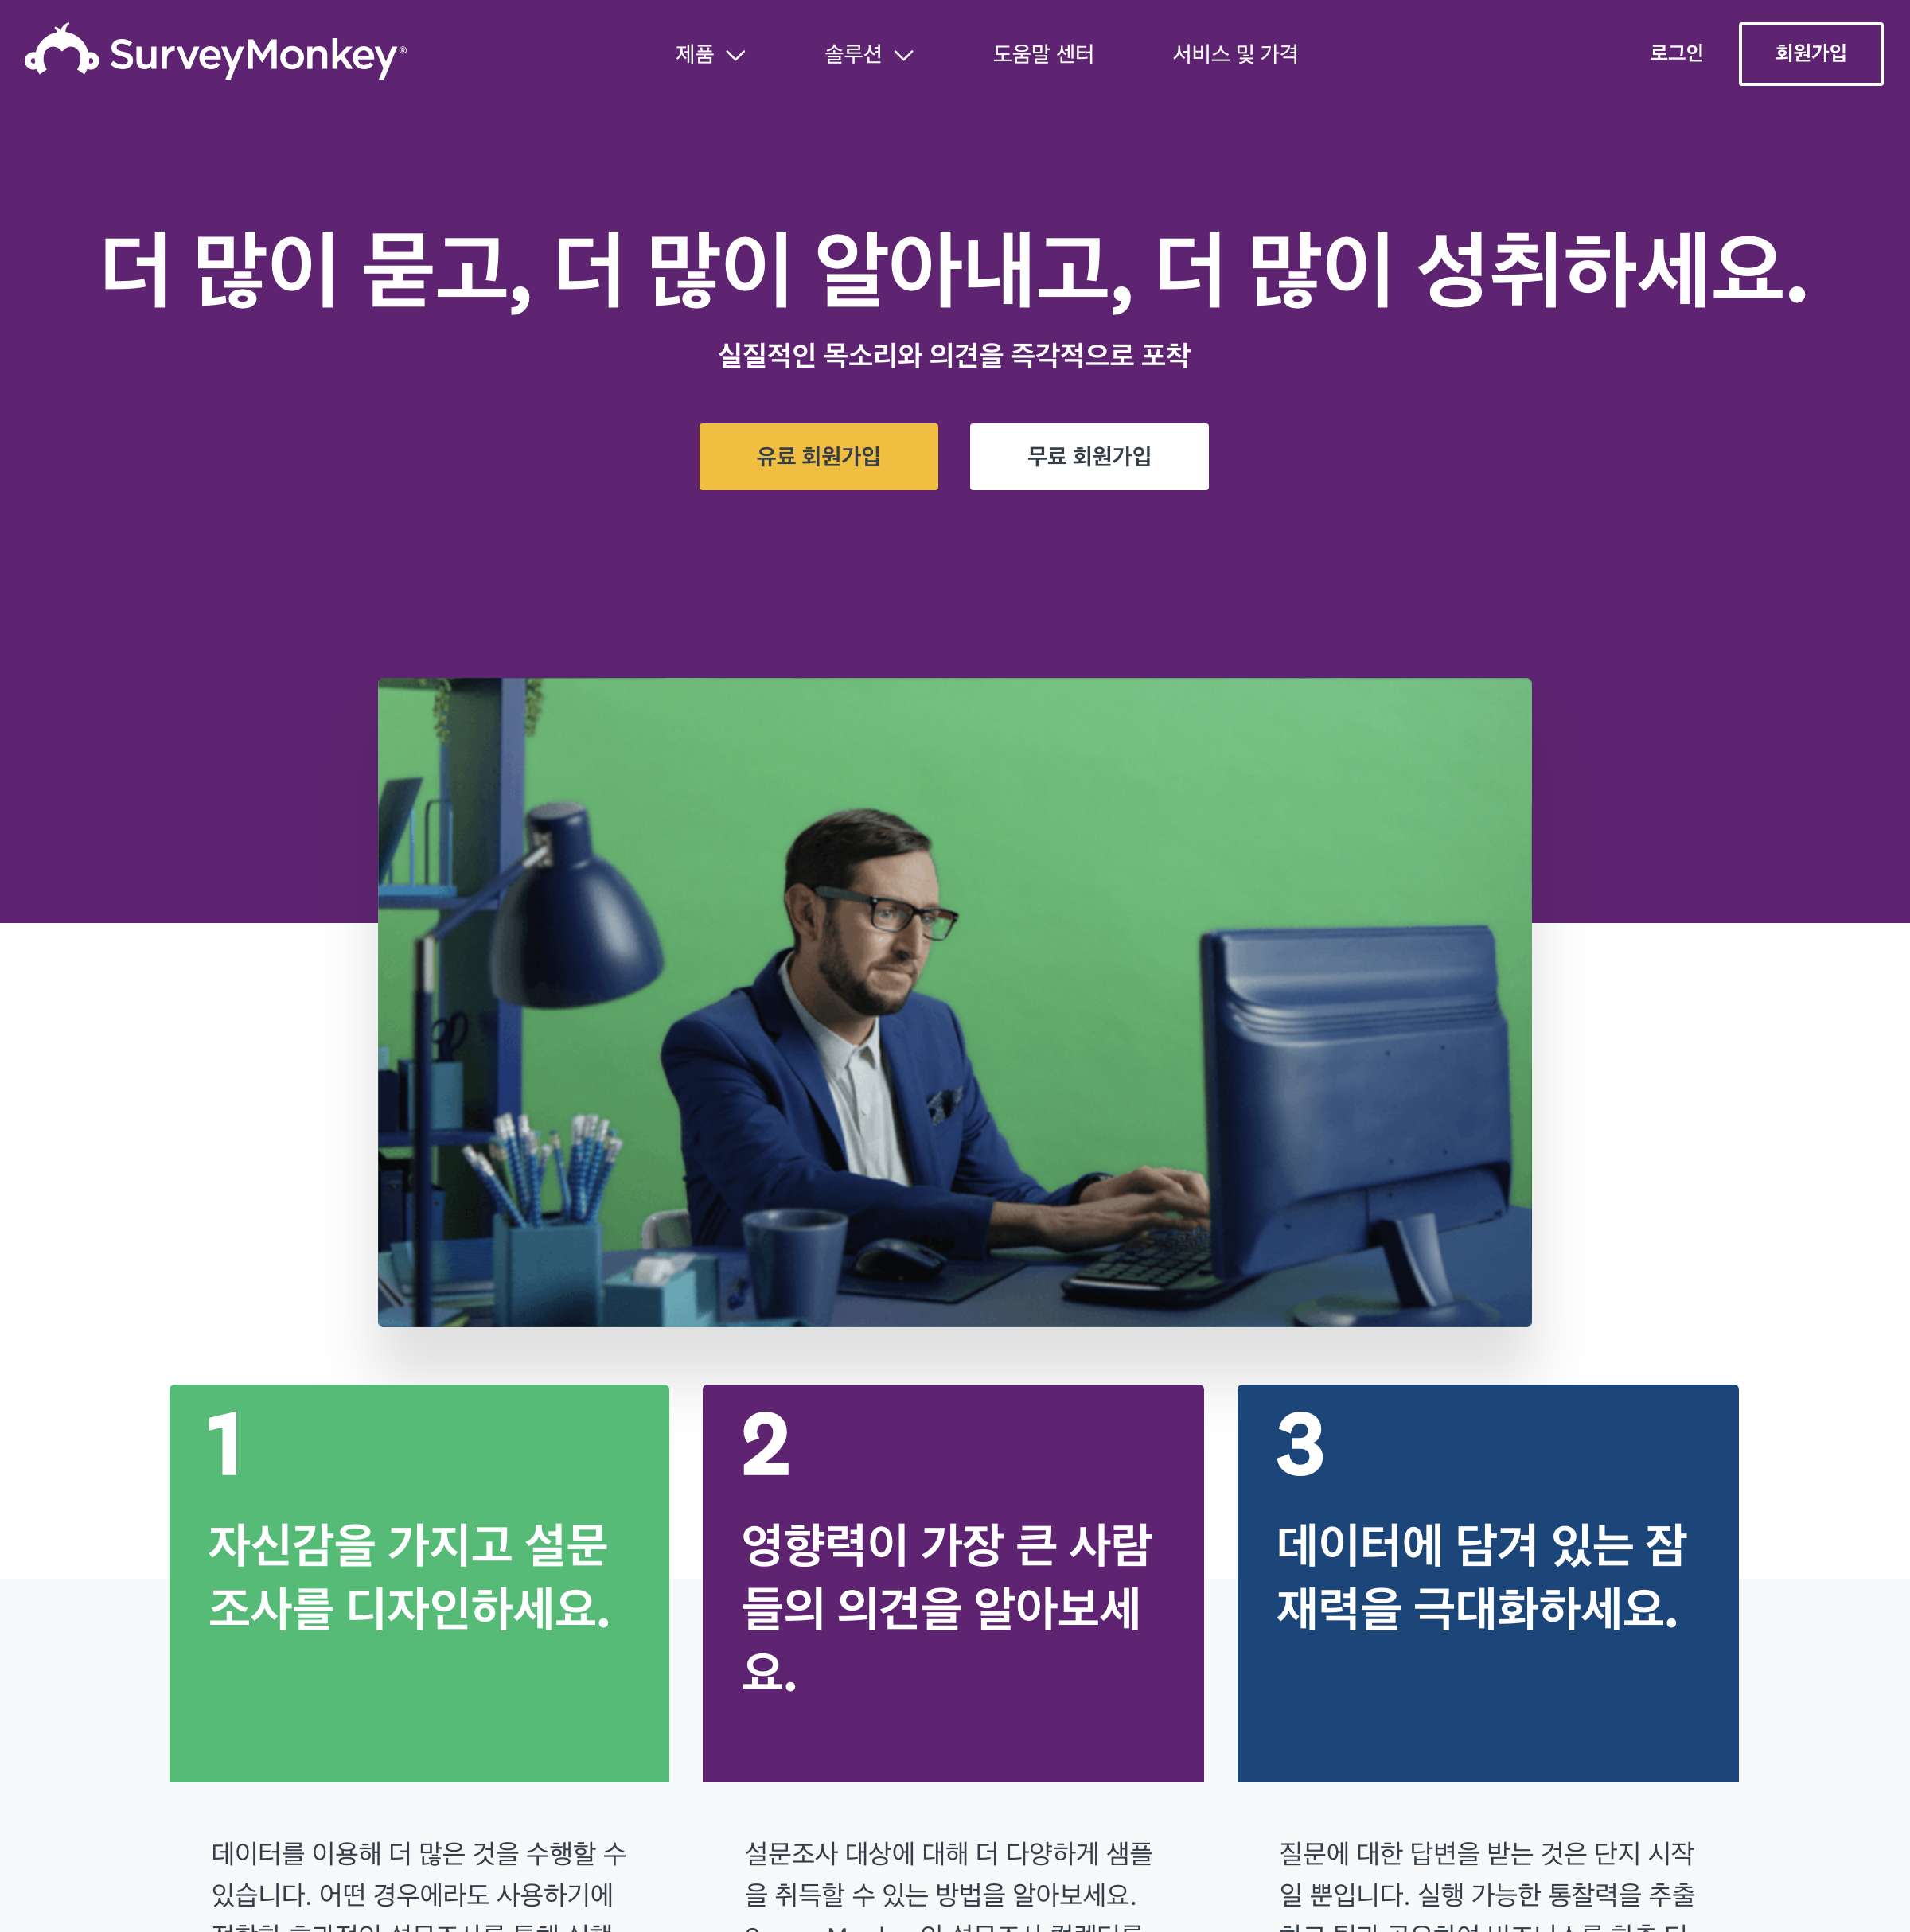 A SurveyMonkey page in Korean with a simple aesthetic